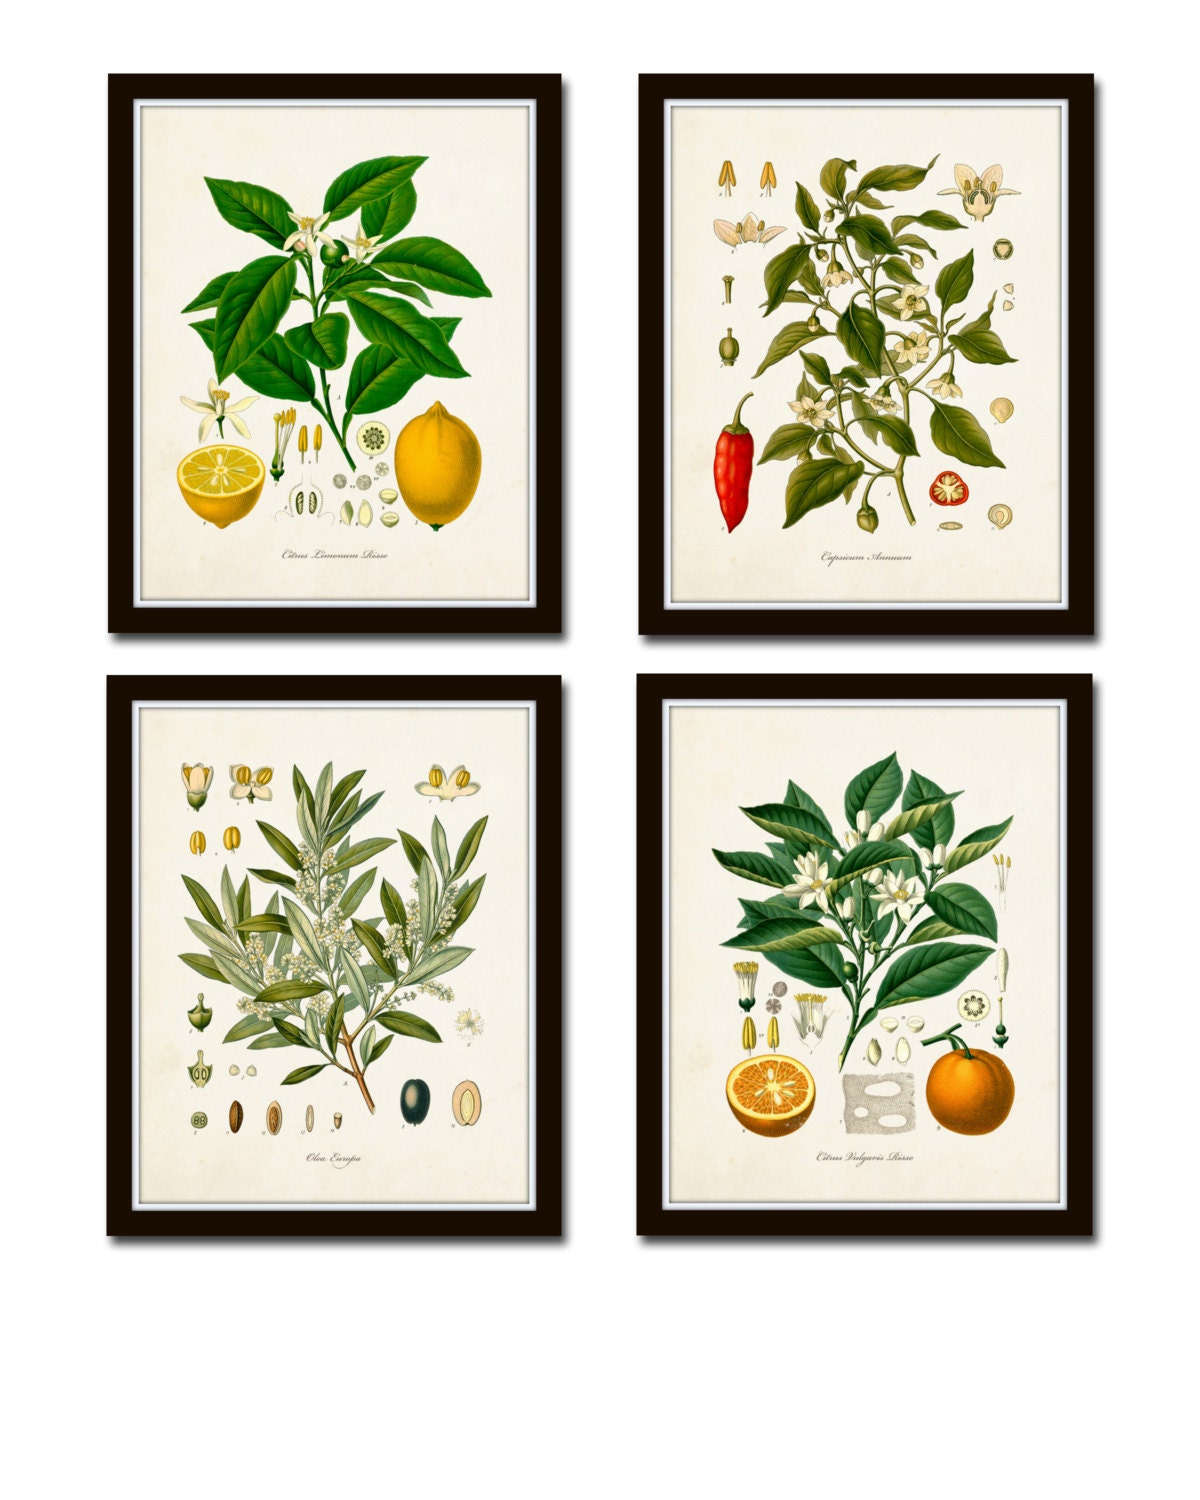 Kitchen Art Vegetables Print Botanicals Kitchen Art: Vintage Fruit Print Set No. 20 Kohler Fruit Prints Botanical